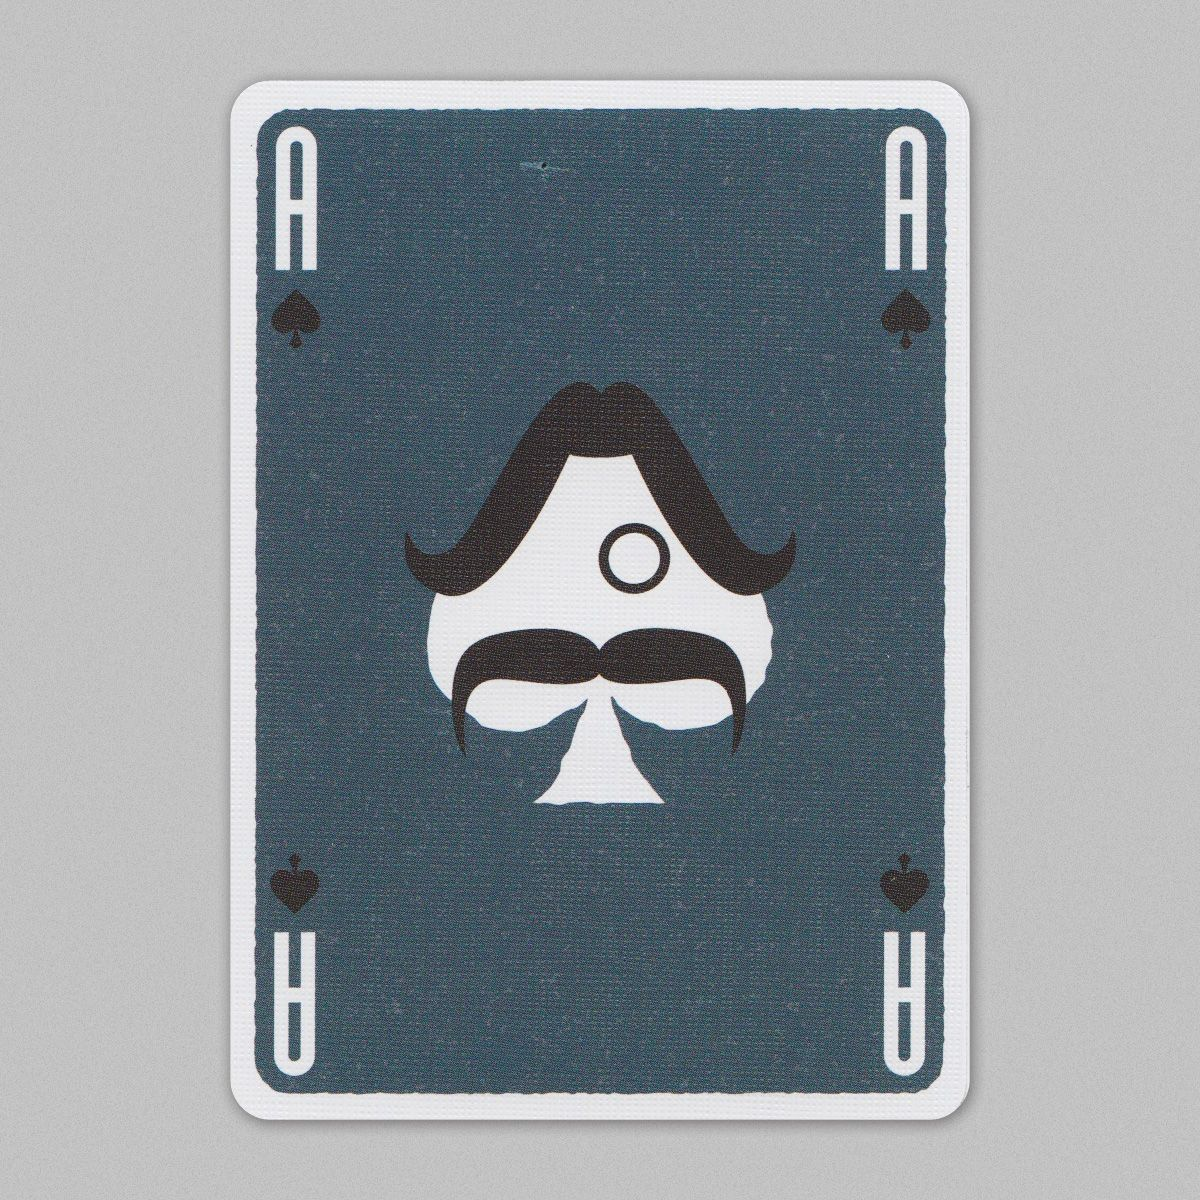 Mustache playing cards aceofspades cartes carte